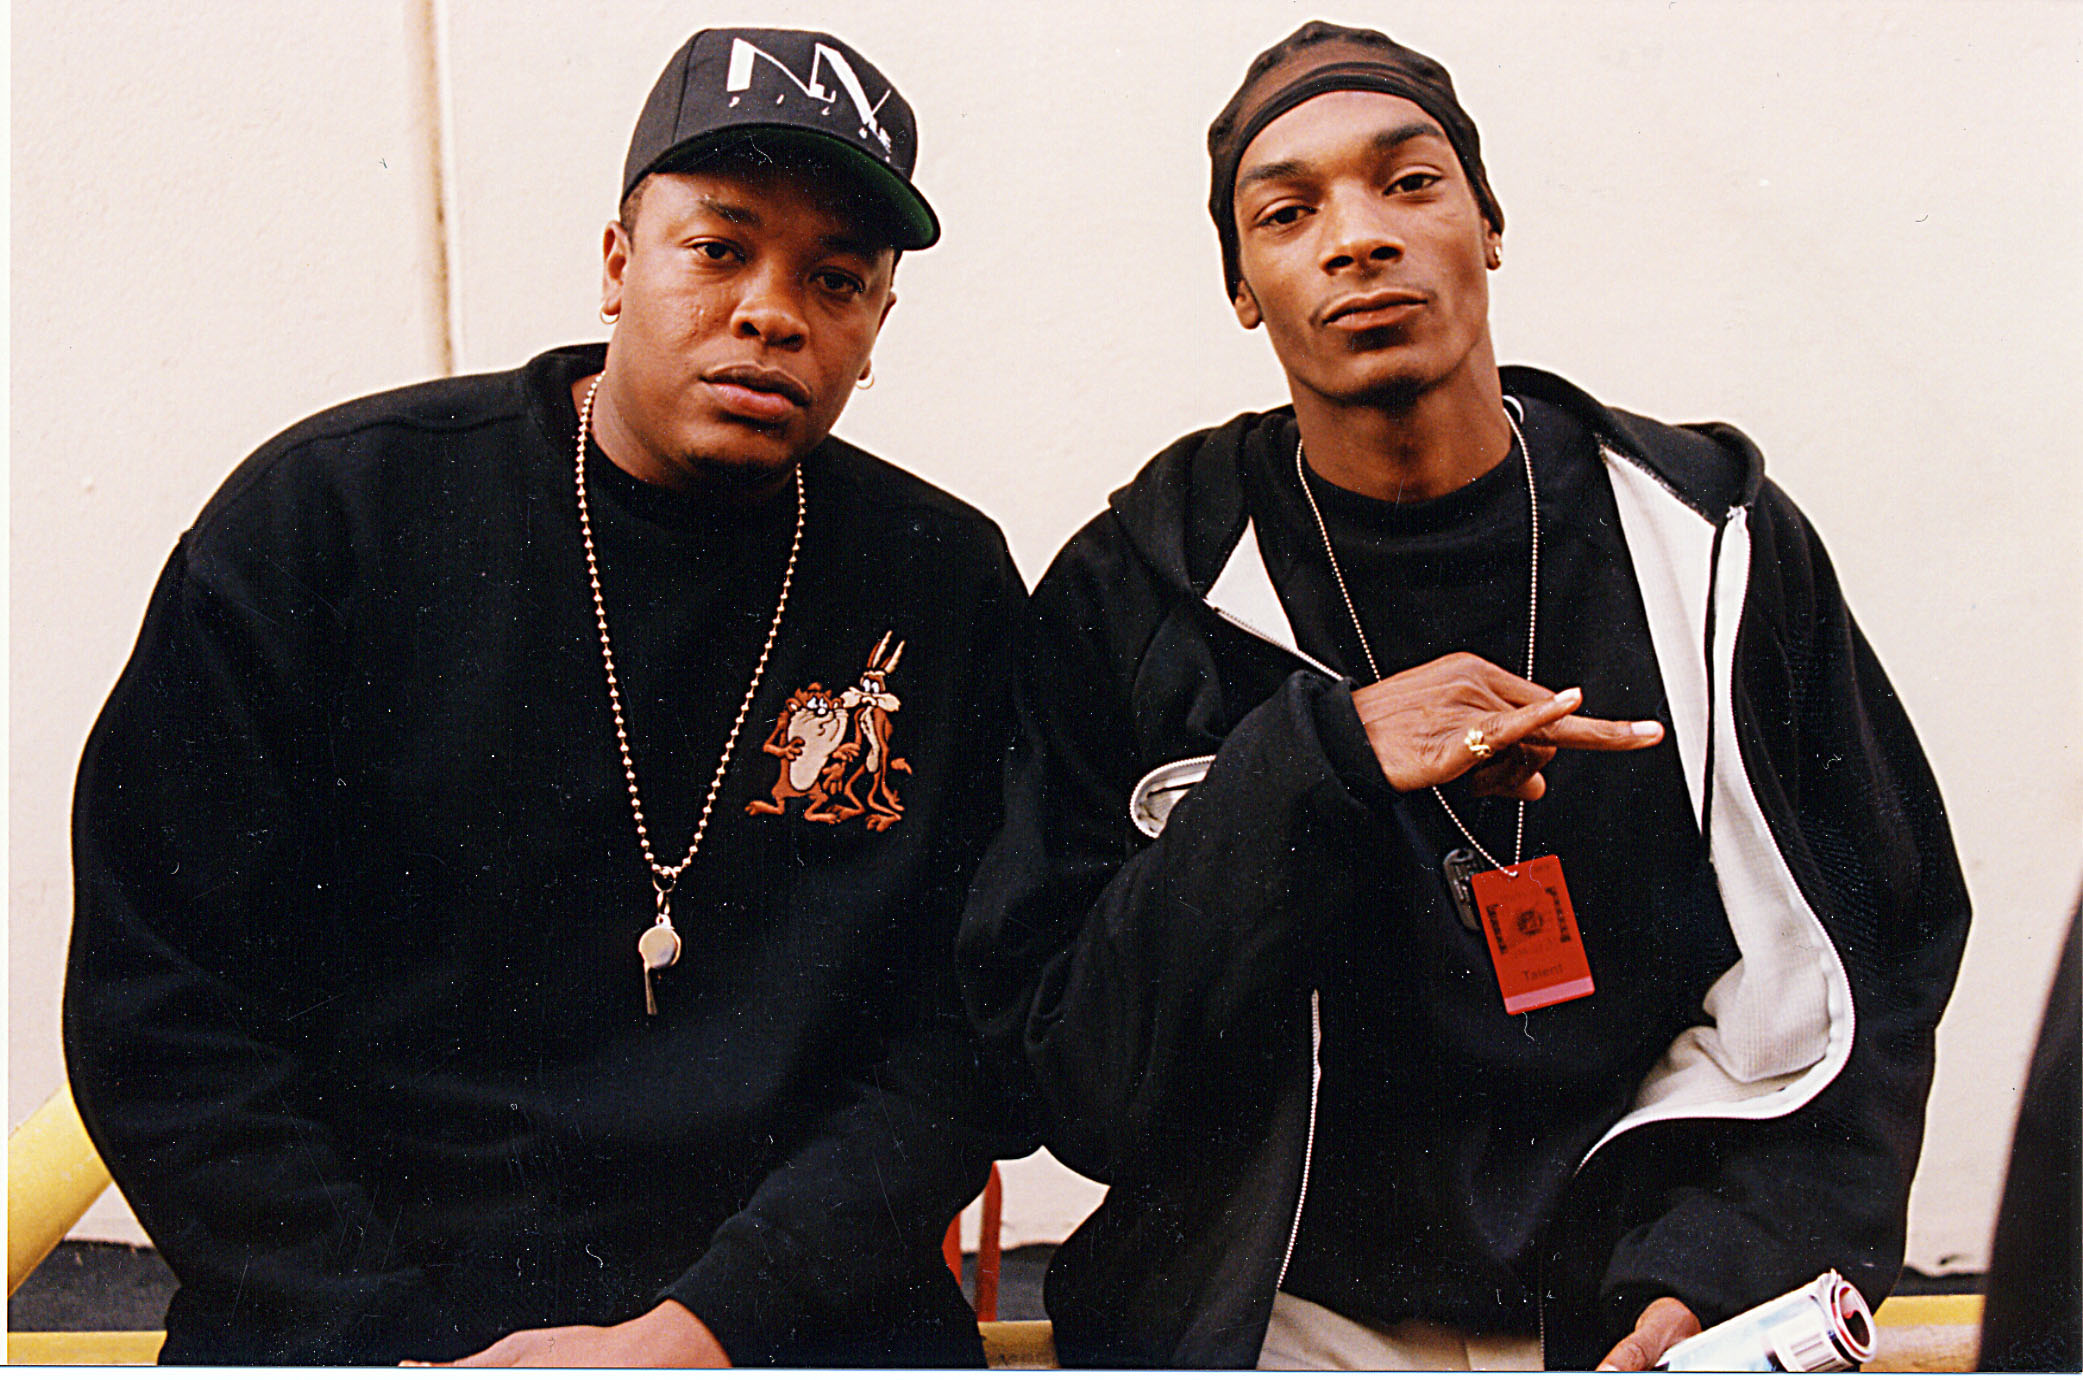 Dr. Dre and Snoop Dogg in 1993